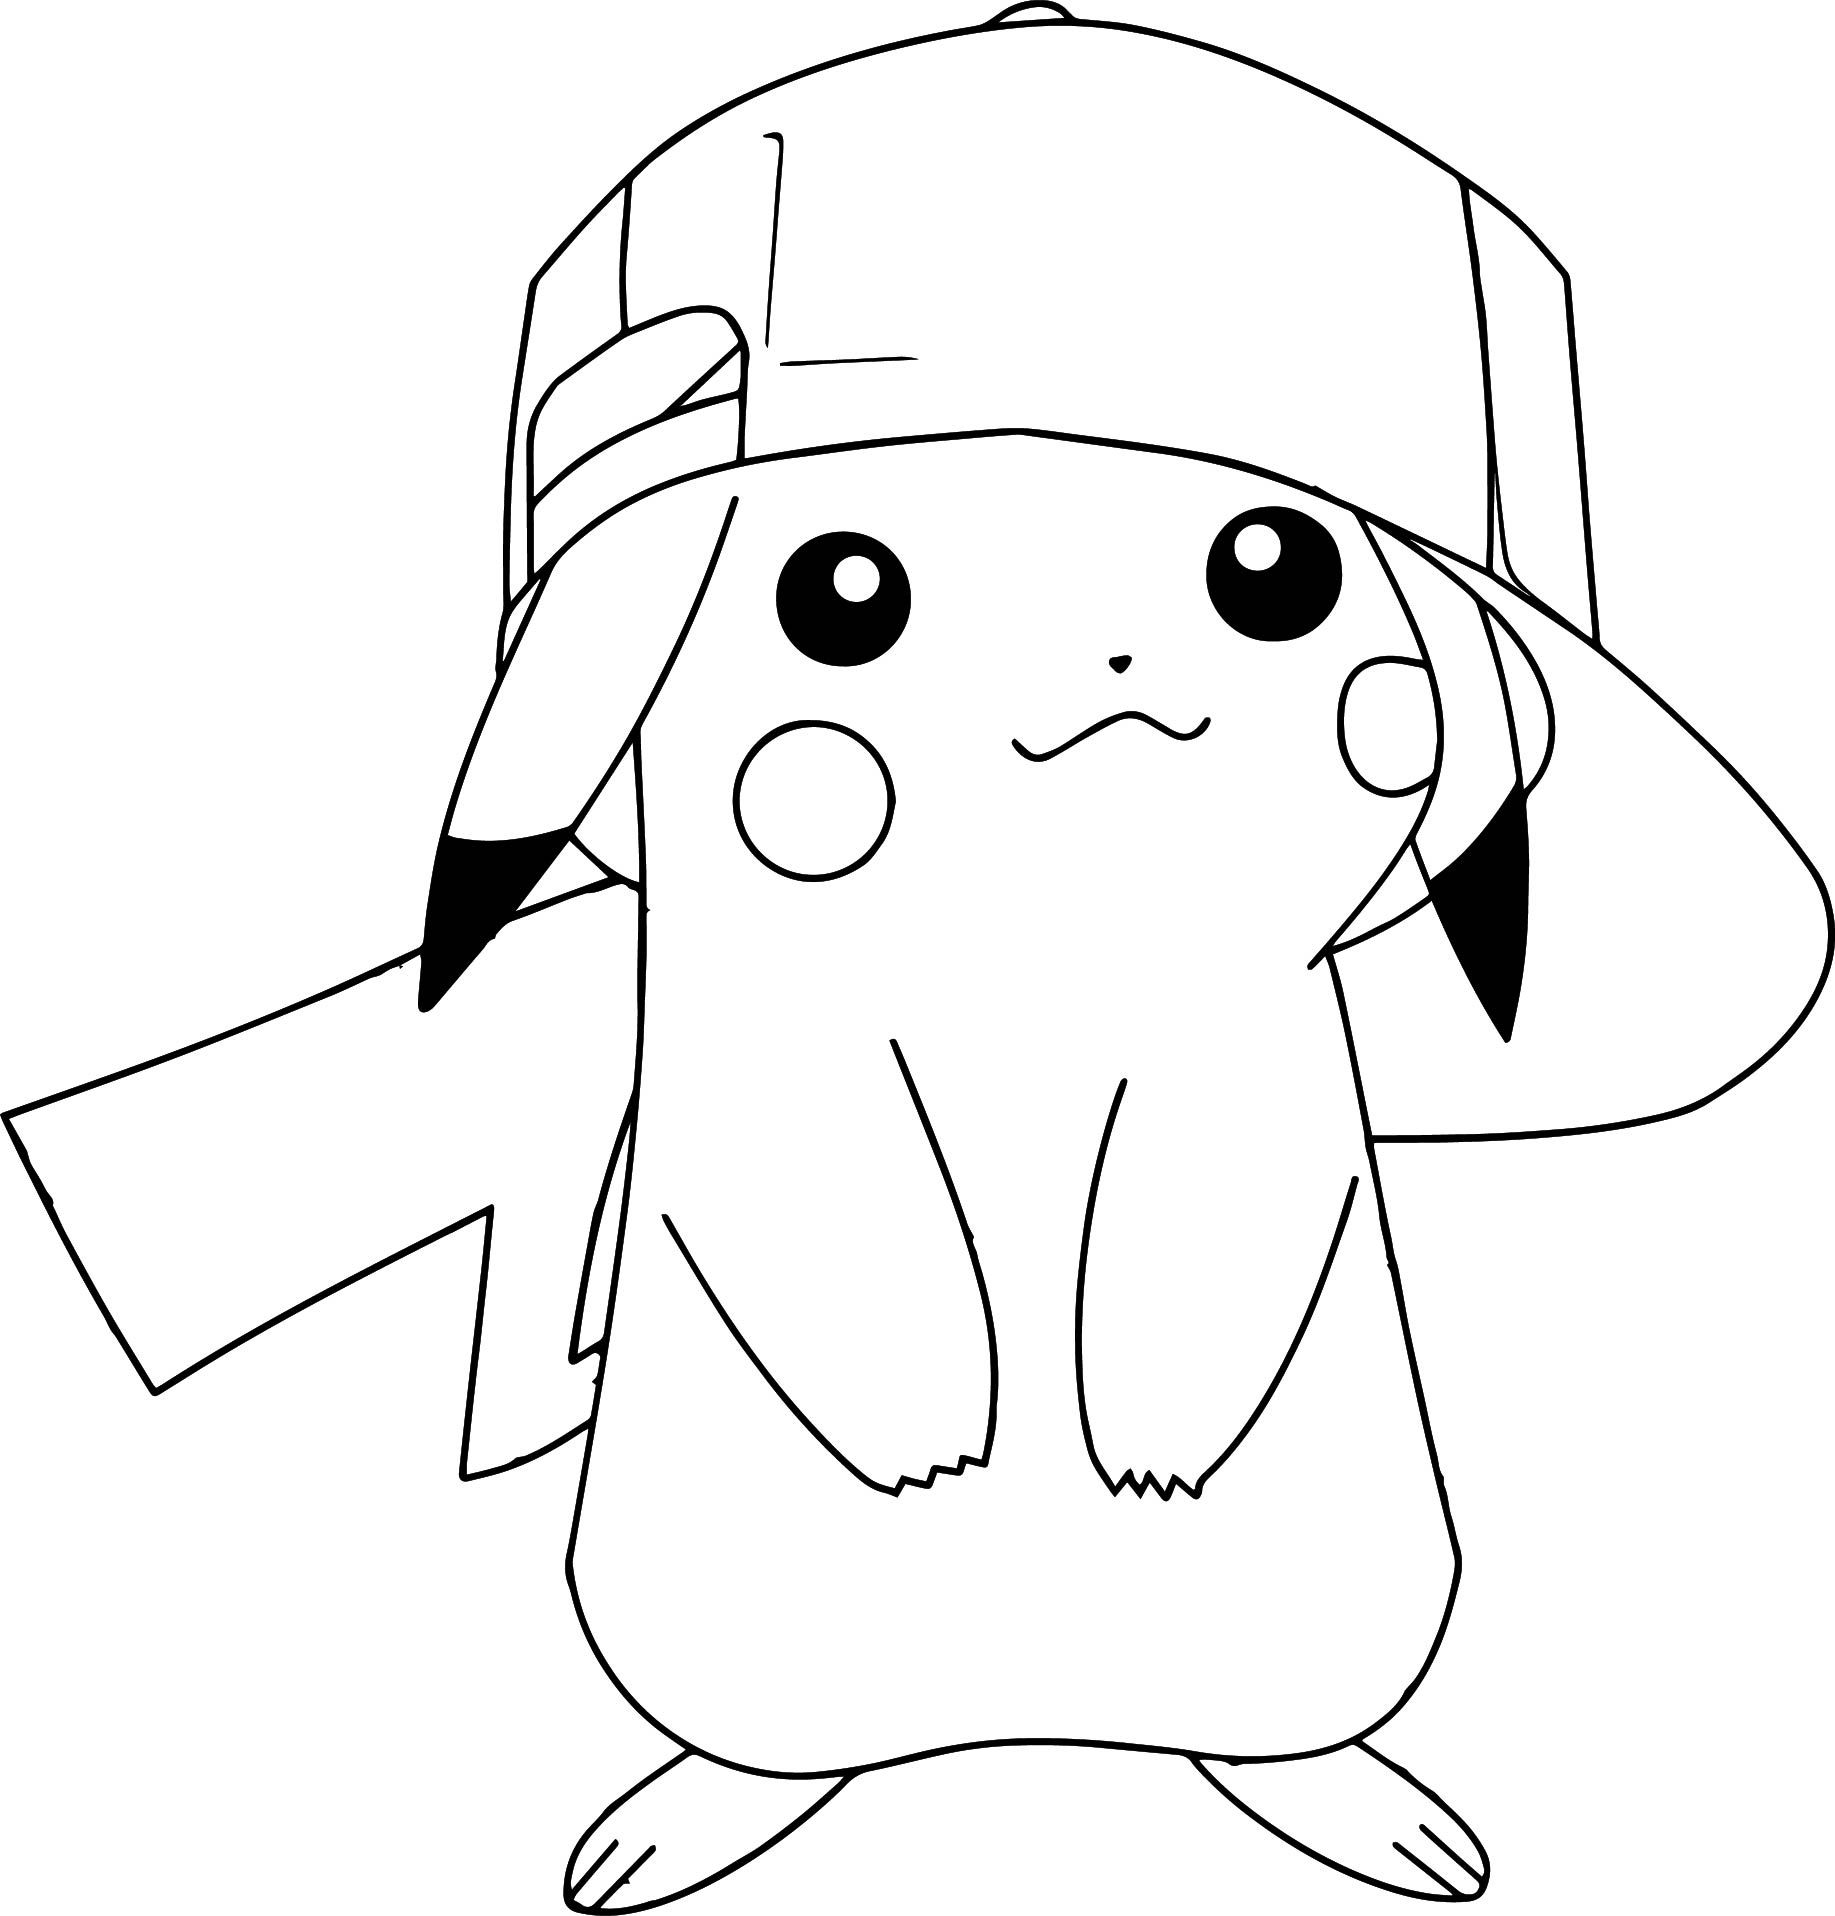 Pokemon Coloring Pages Pikachu Wearing Hat | Michelle | Pinterest - Free Printable Pokemon Coloring Pages